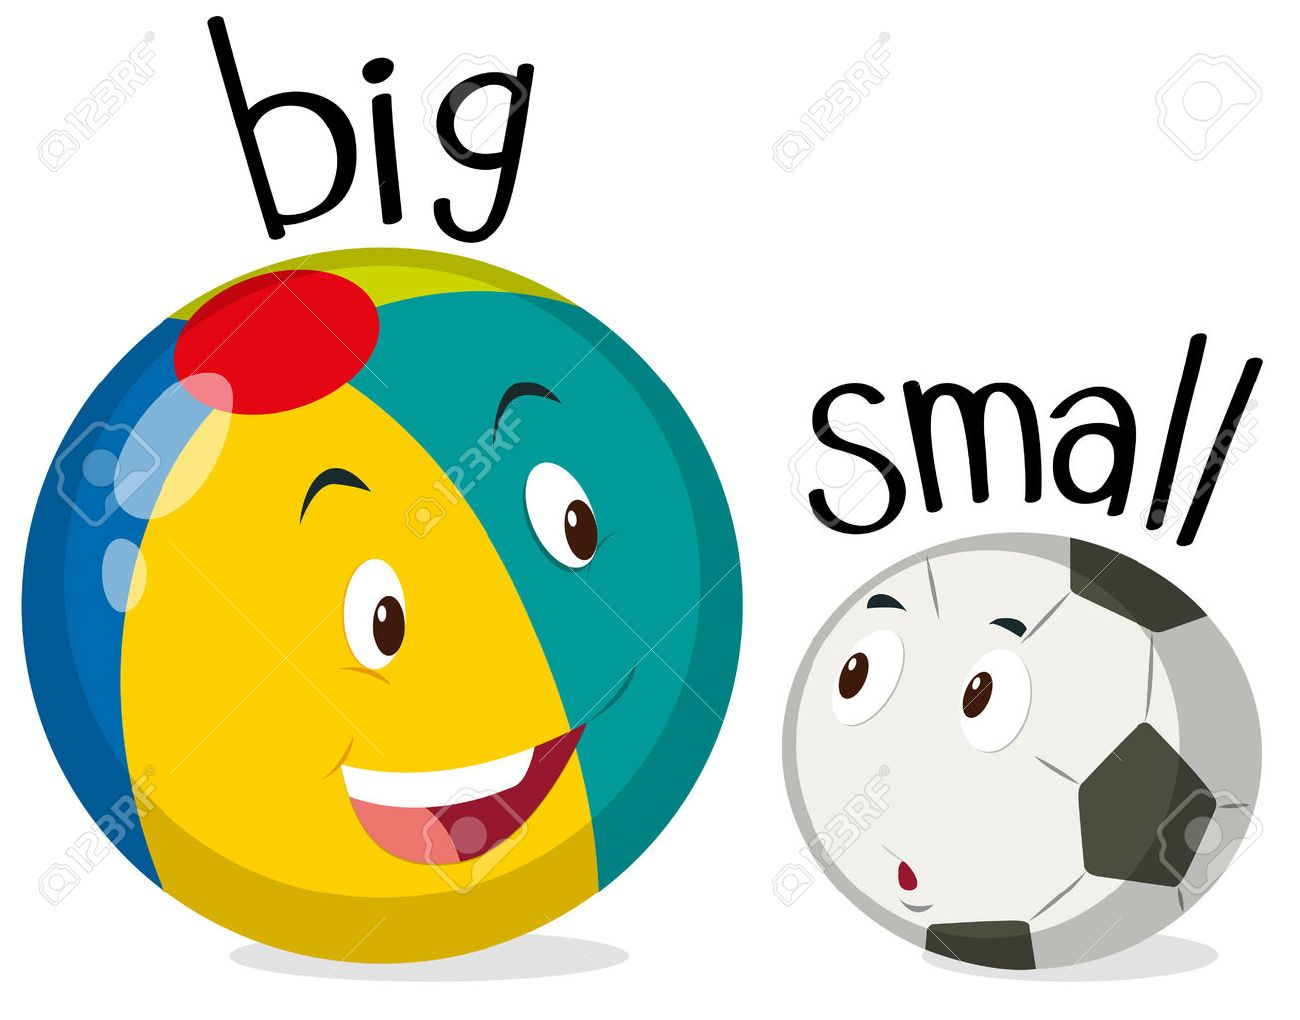 two balls one big and one small illustration royalty free cliparts rh 123rf com small clip art balloons small clip art turkey